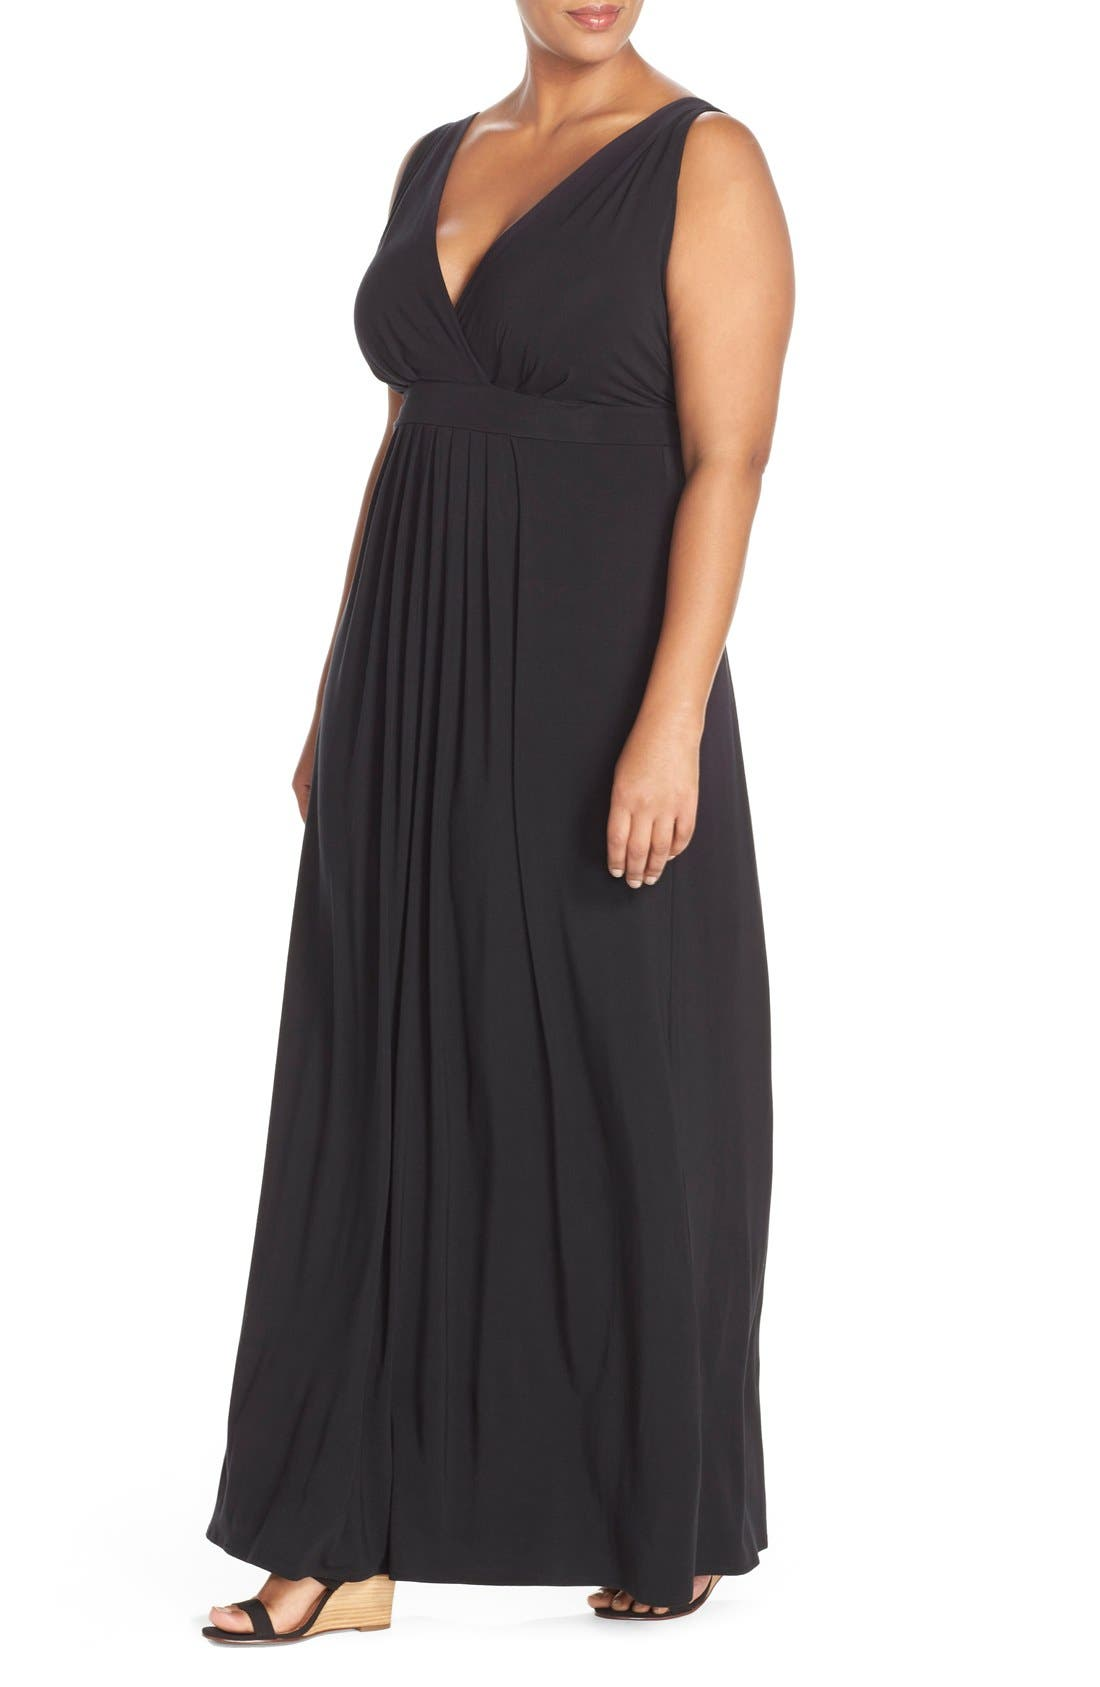 Chloe Empire Waist Maxi Dress,                             Alternate thumbnail 4, color,                             001